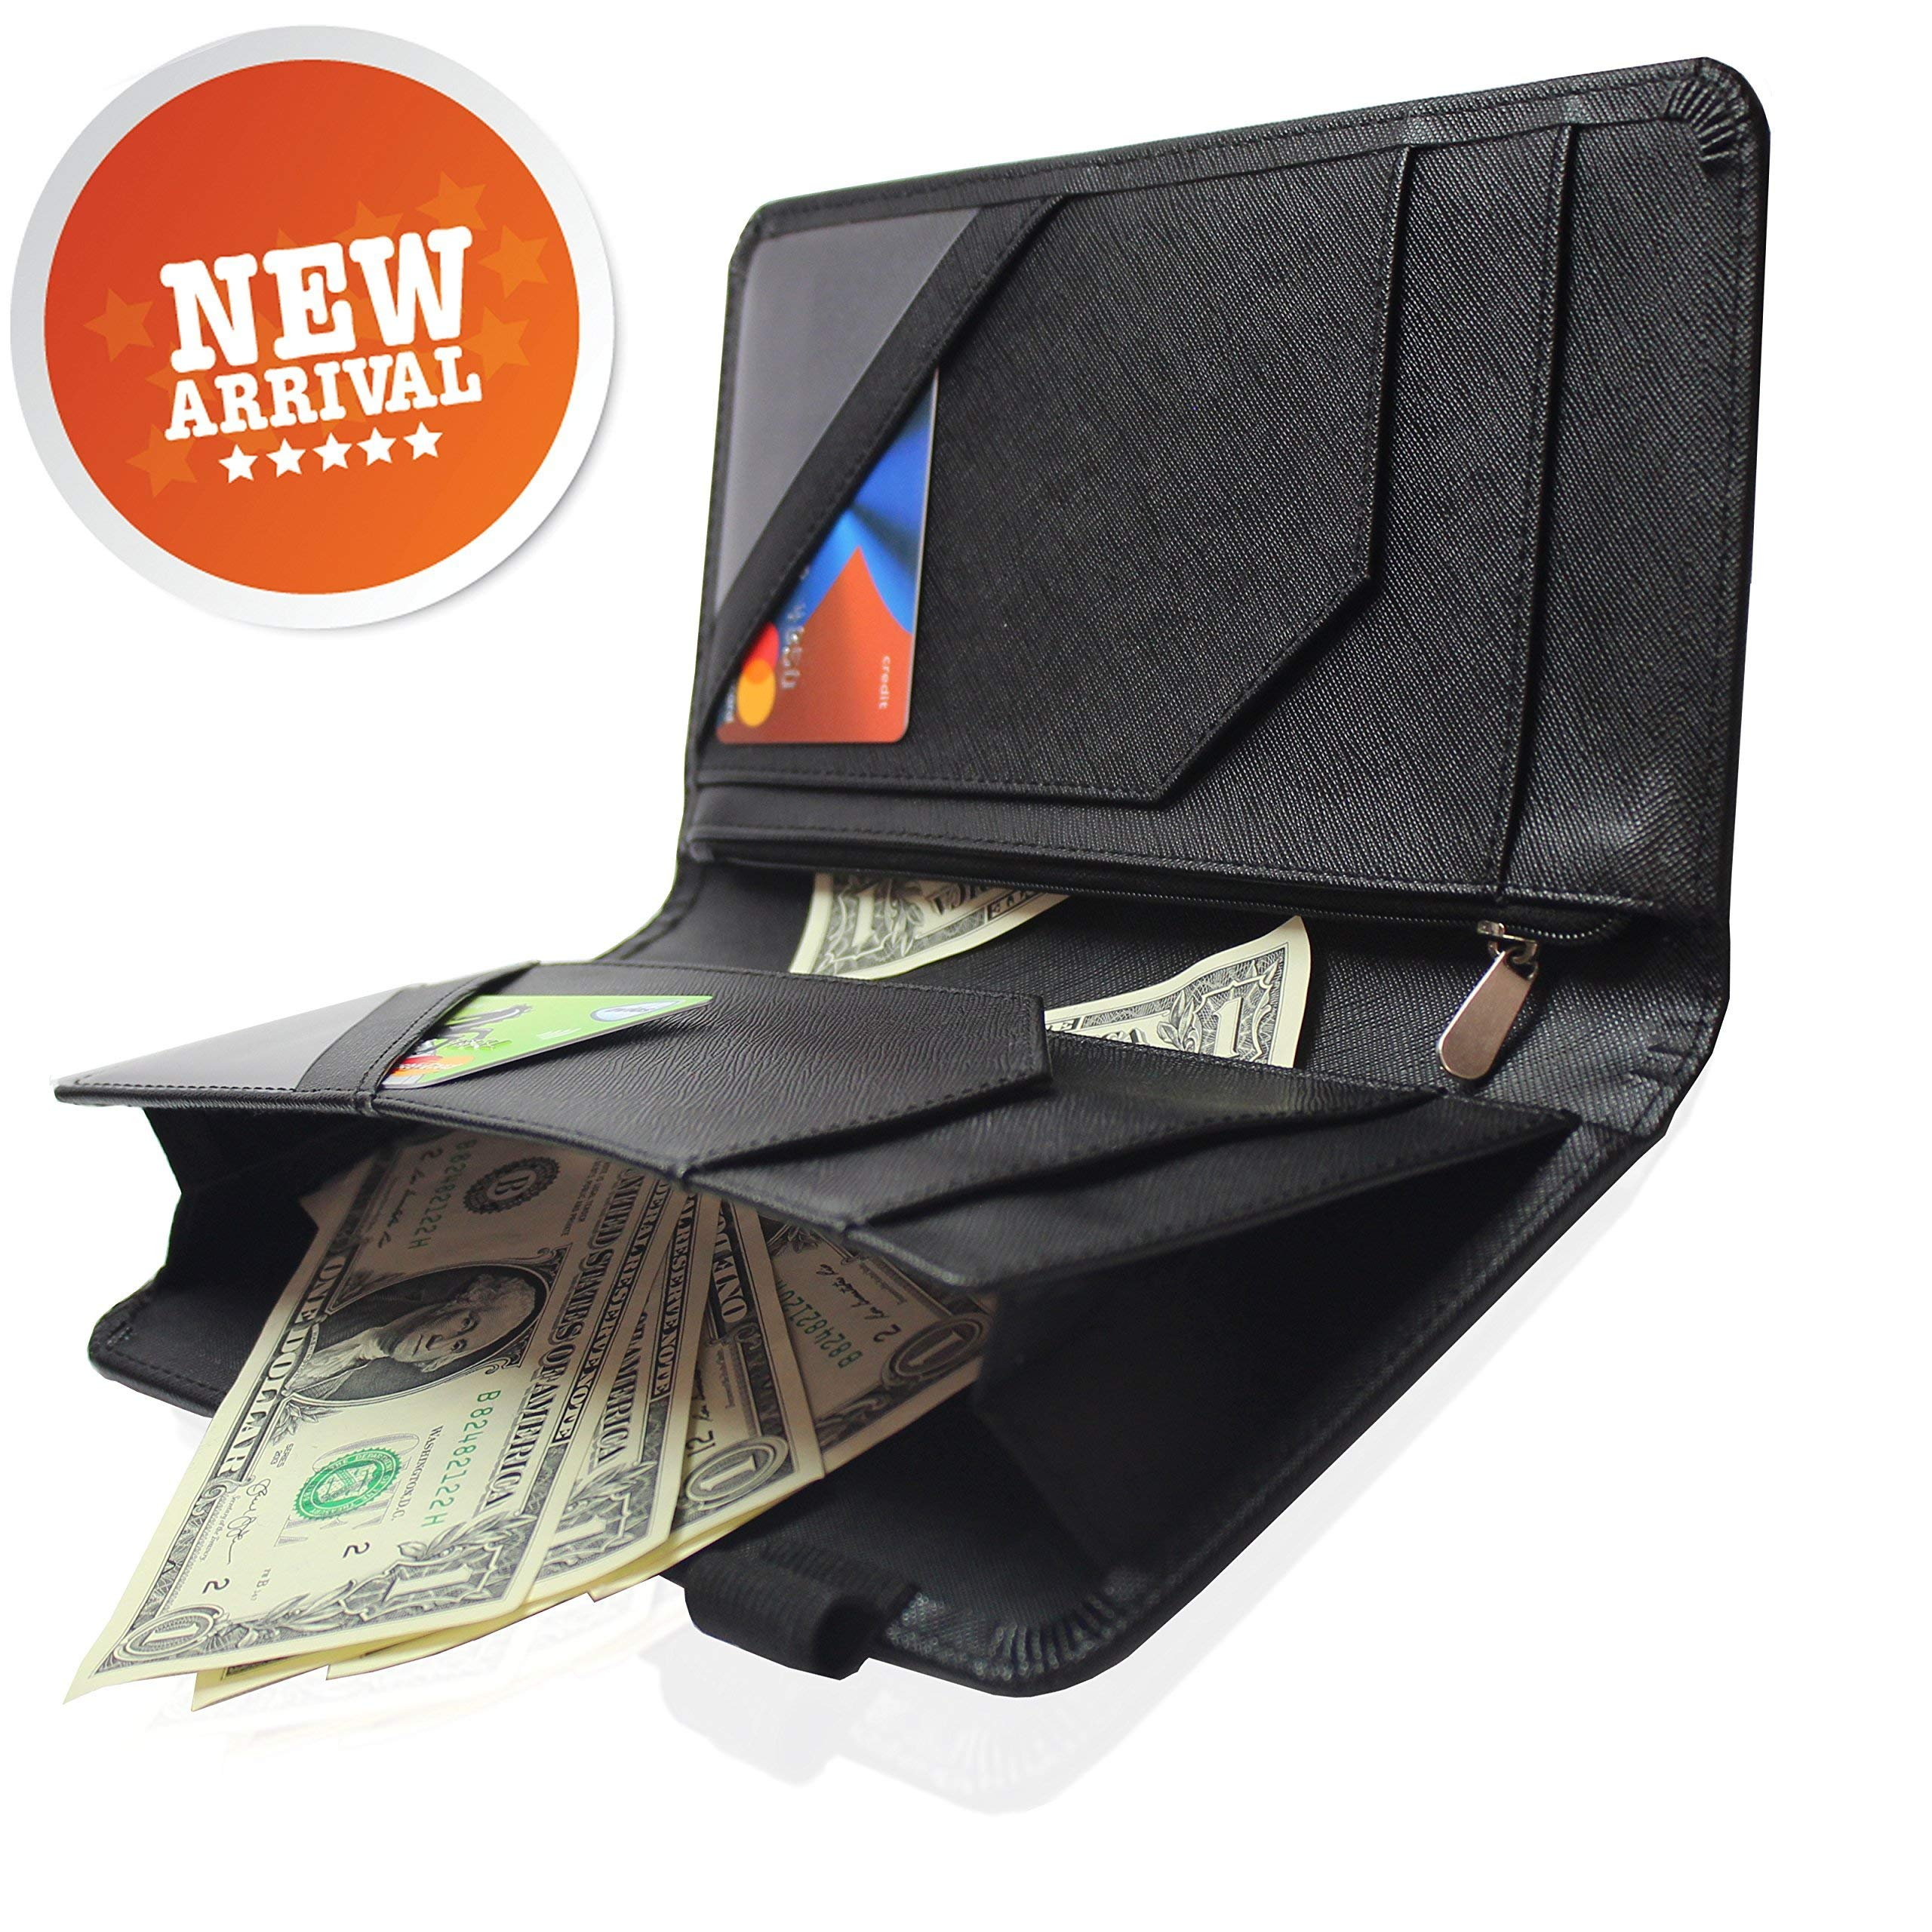 Waitress Waiter Server Book Organizer with Zipper Pocket Wallet for Waitstaff Black 5x9 and 12 Money Pockets with Pen Holder Fits Restaurant Guest Check Order Pad & Apron By Ogalv by Ogalv (Image #1)